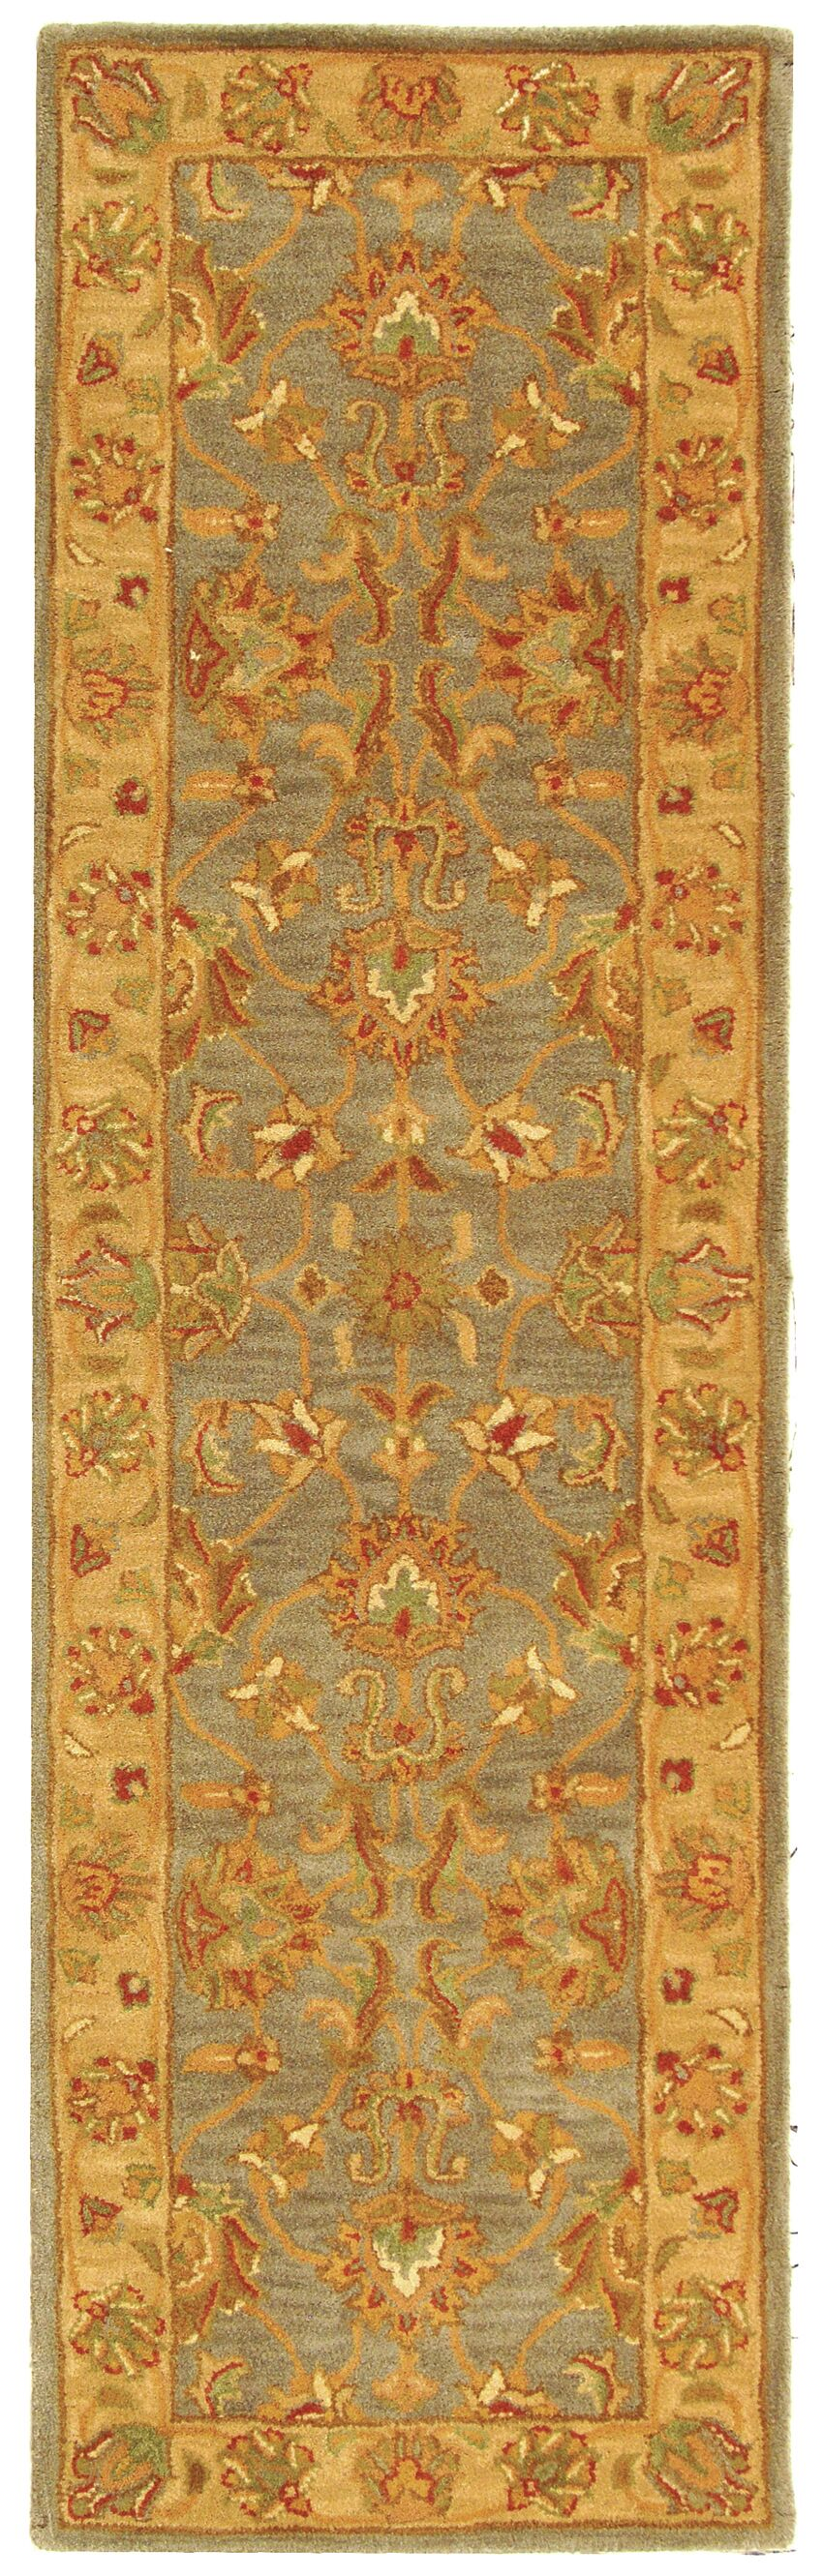 Cranmore Hand-Tufted Wool Blue/Beige Area Rug Rug Size: Runner 2'3